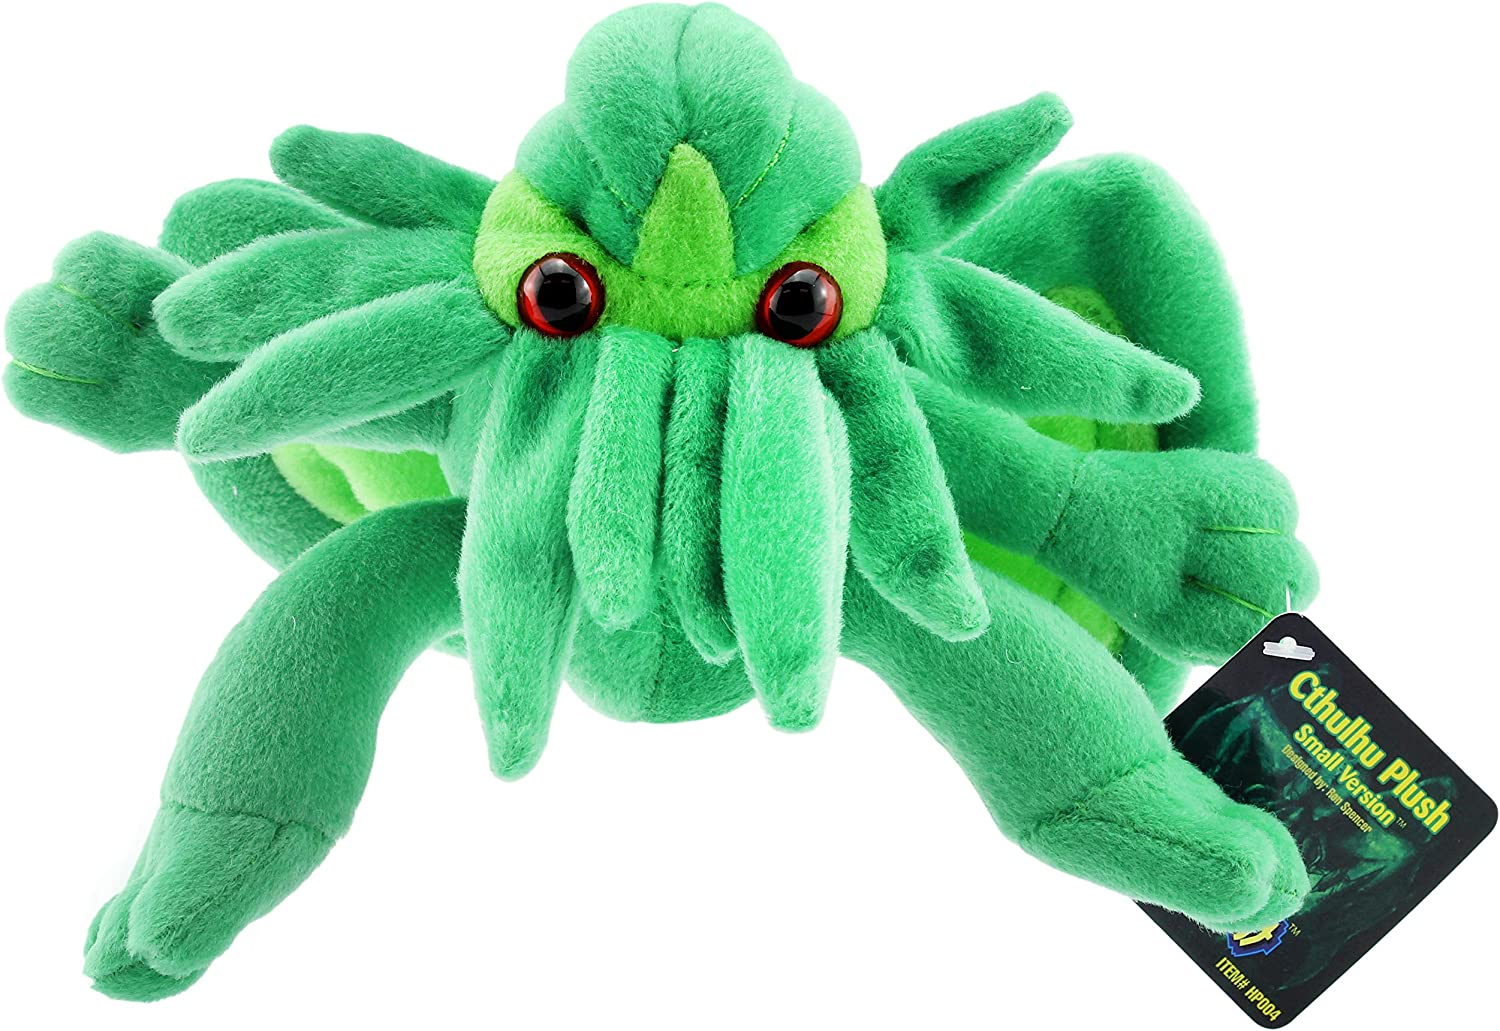 Toy Vault Mini Cthulhu Plush, 8-Inch; Stuffed Horror Toy Based on H.P. Lovecraft's Weird Fiction, Small Size